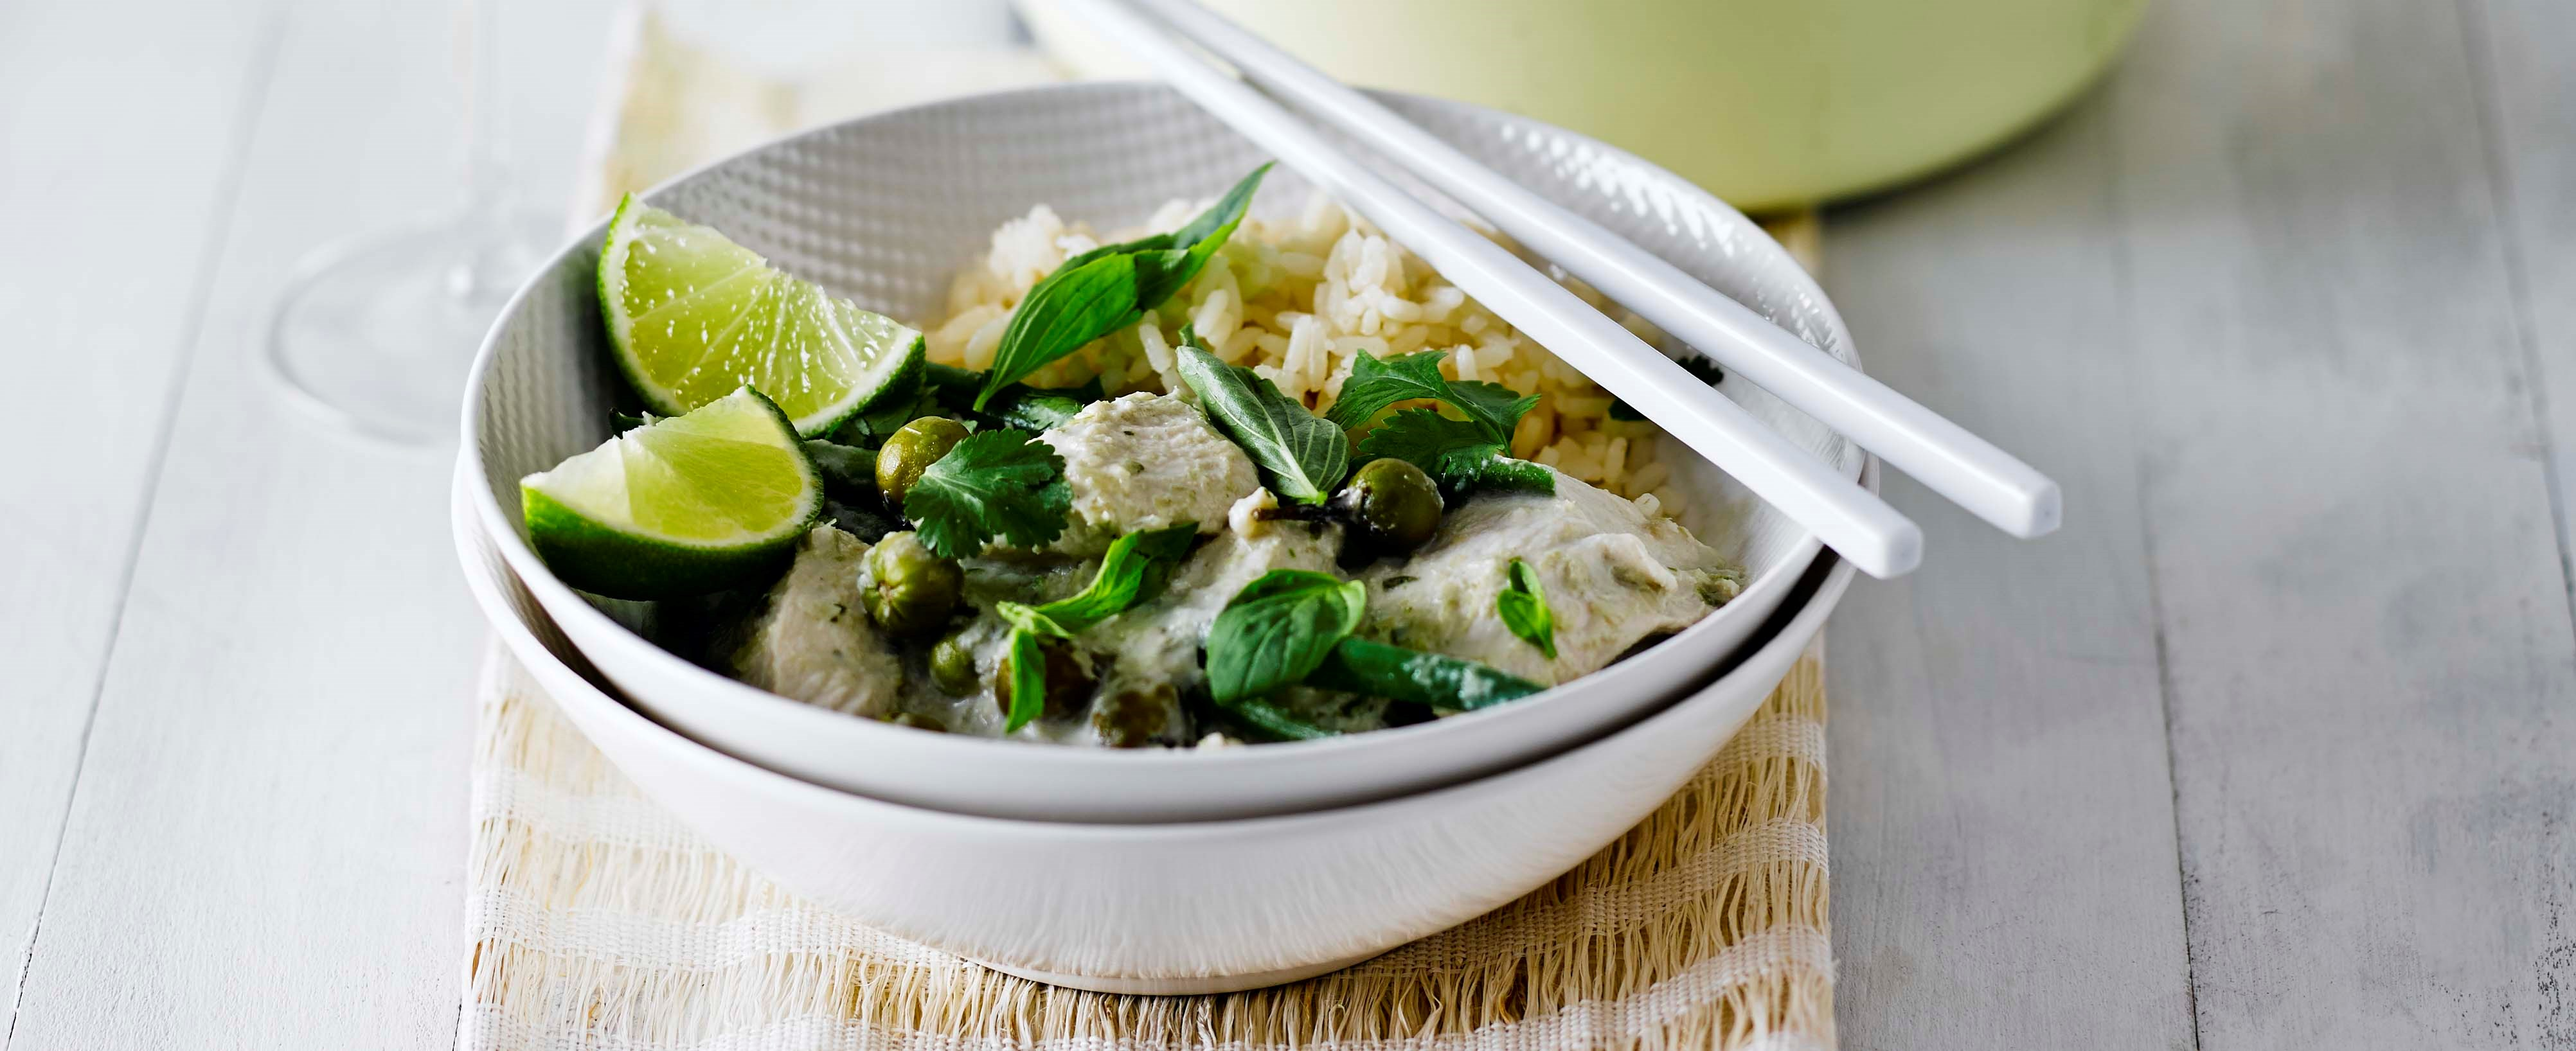 20 easy thai recipes olive magazine olive magazine best ever easy thai recipes forumfinder Image collections